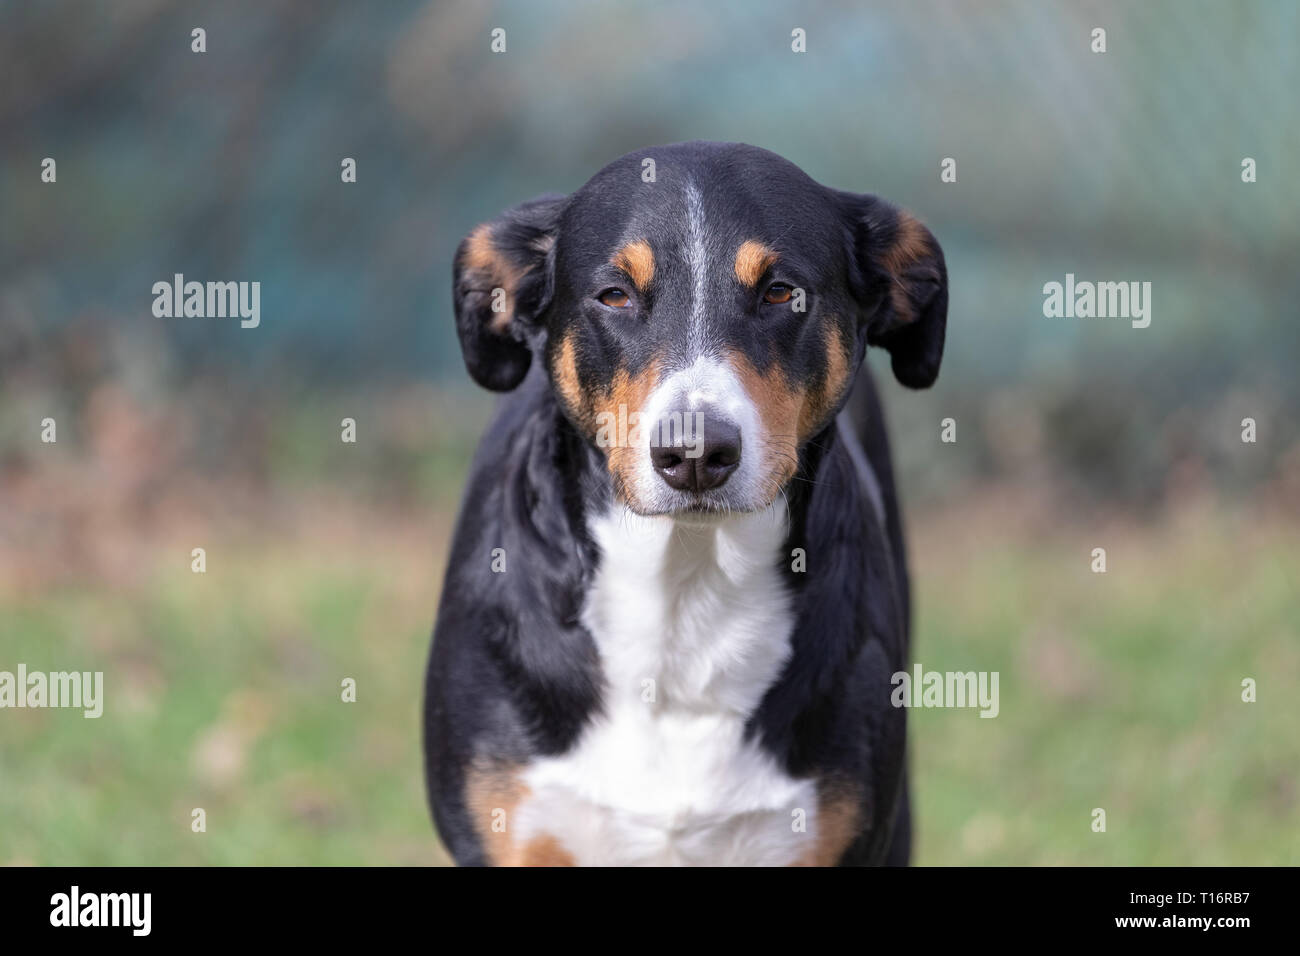 Appenzeller Sennenhund The Dog Is Standing In The Park On